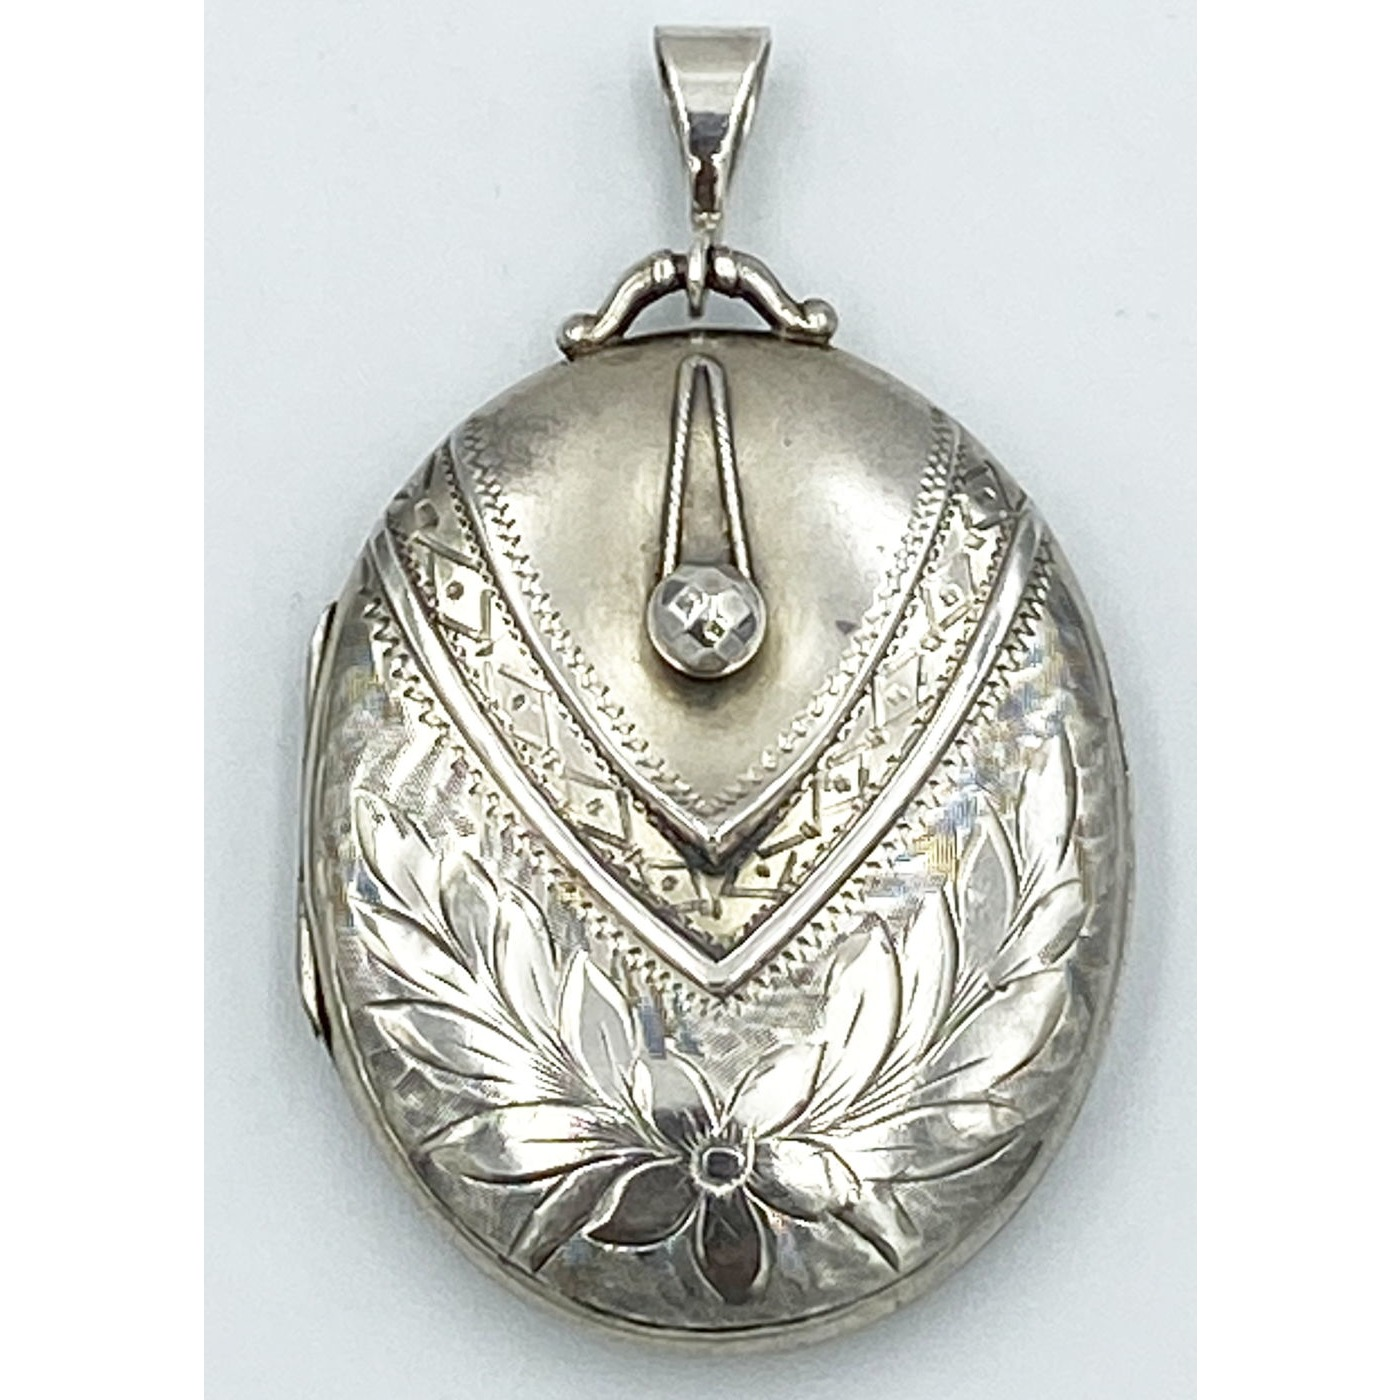 Lovely Corset Floral Engraved Antique English Silver Locket